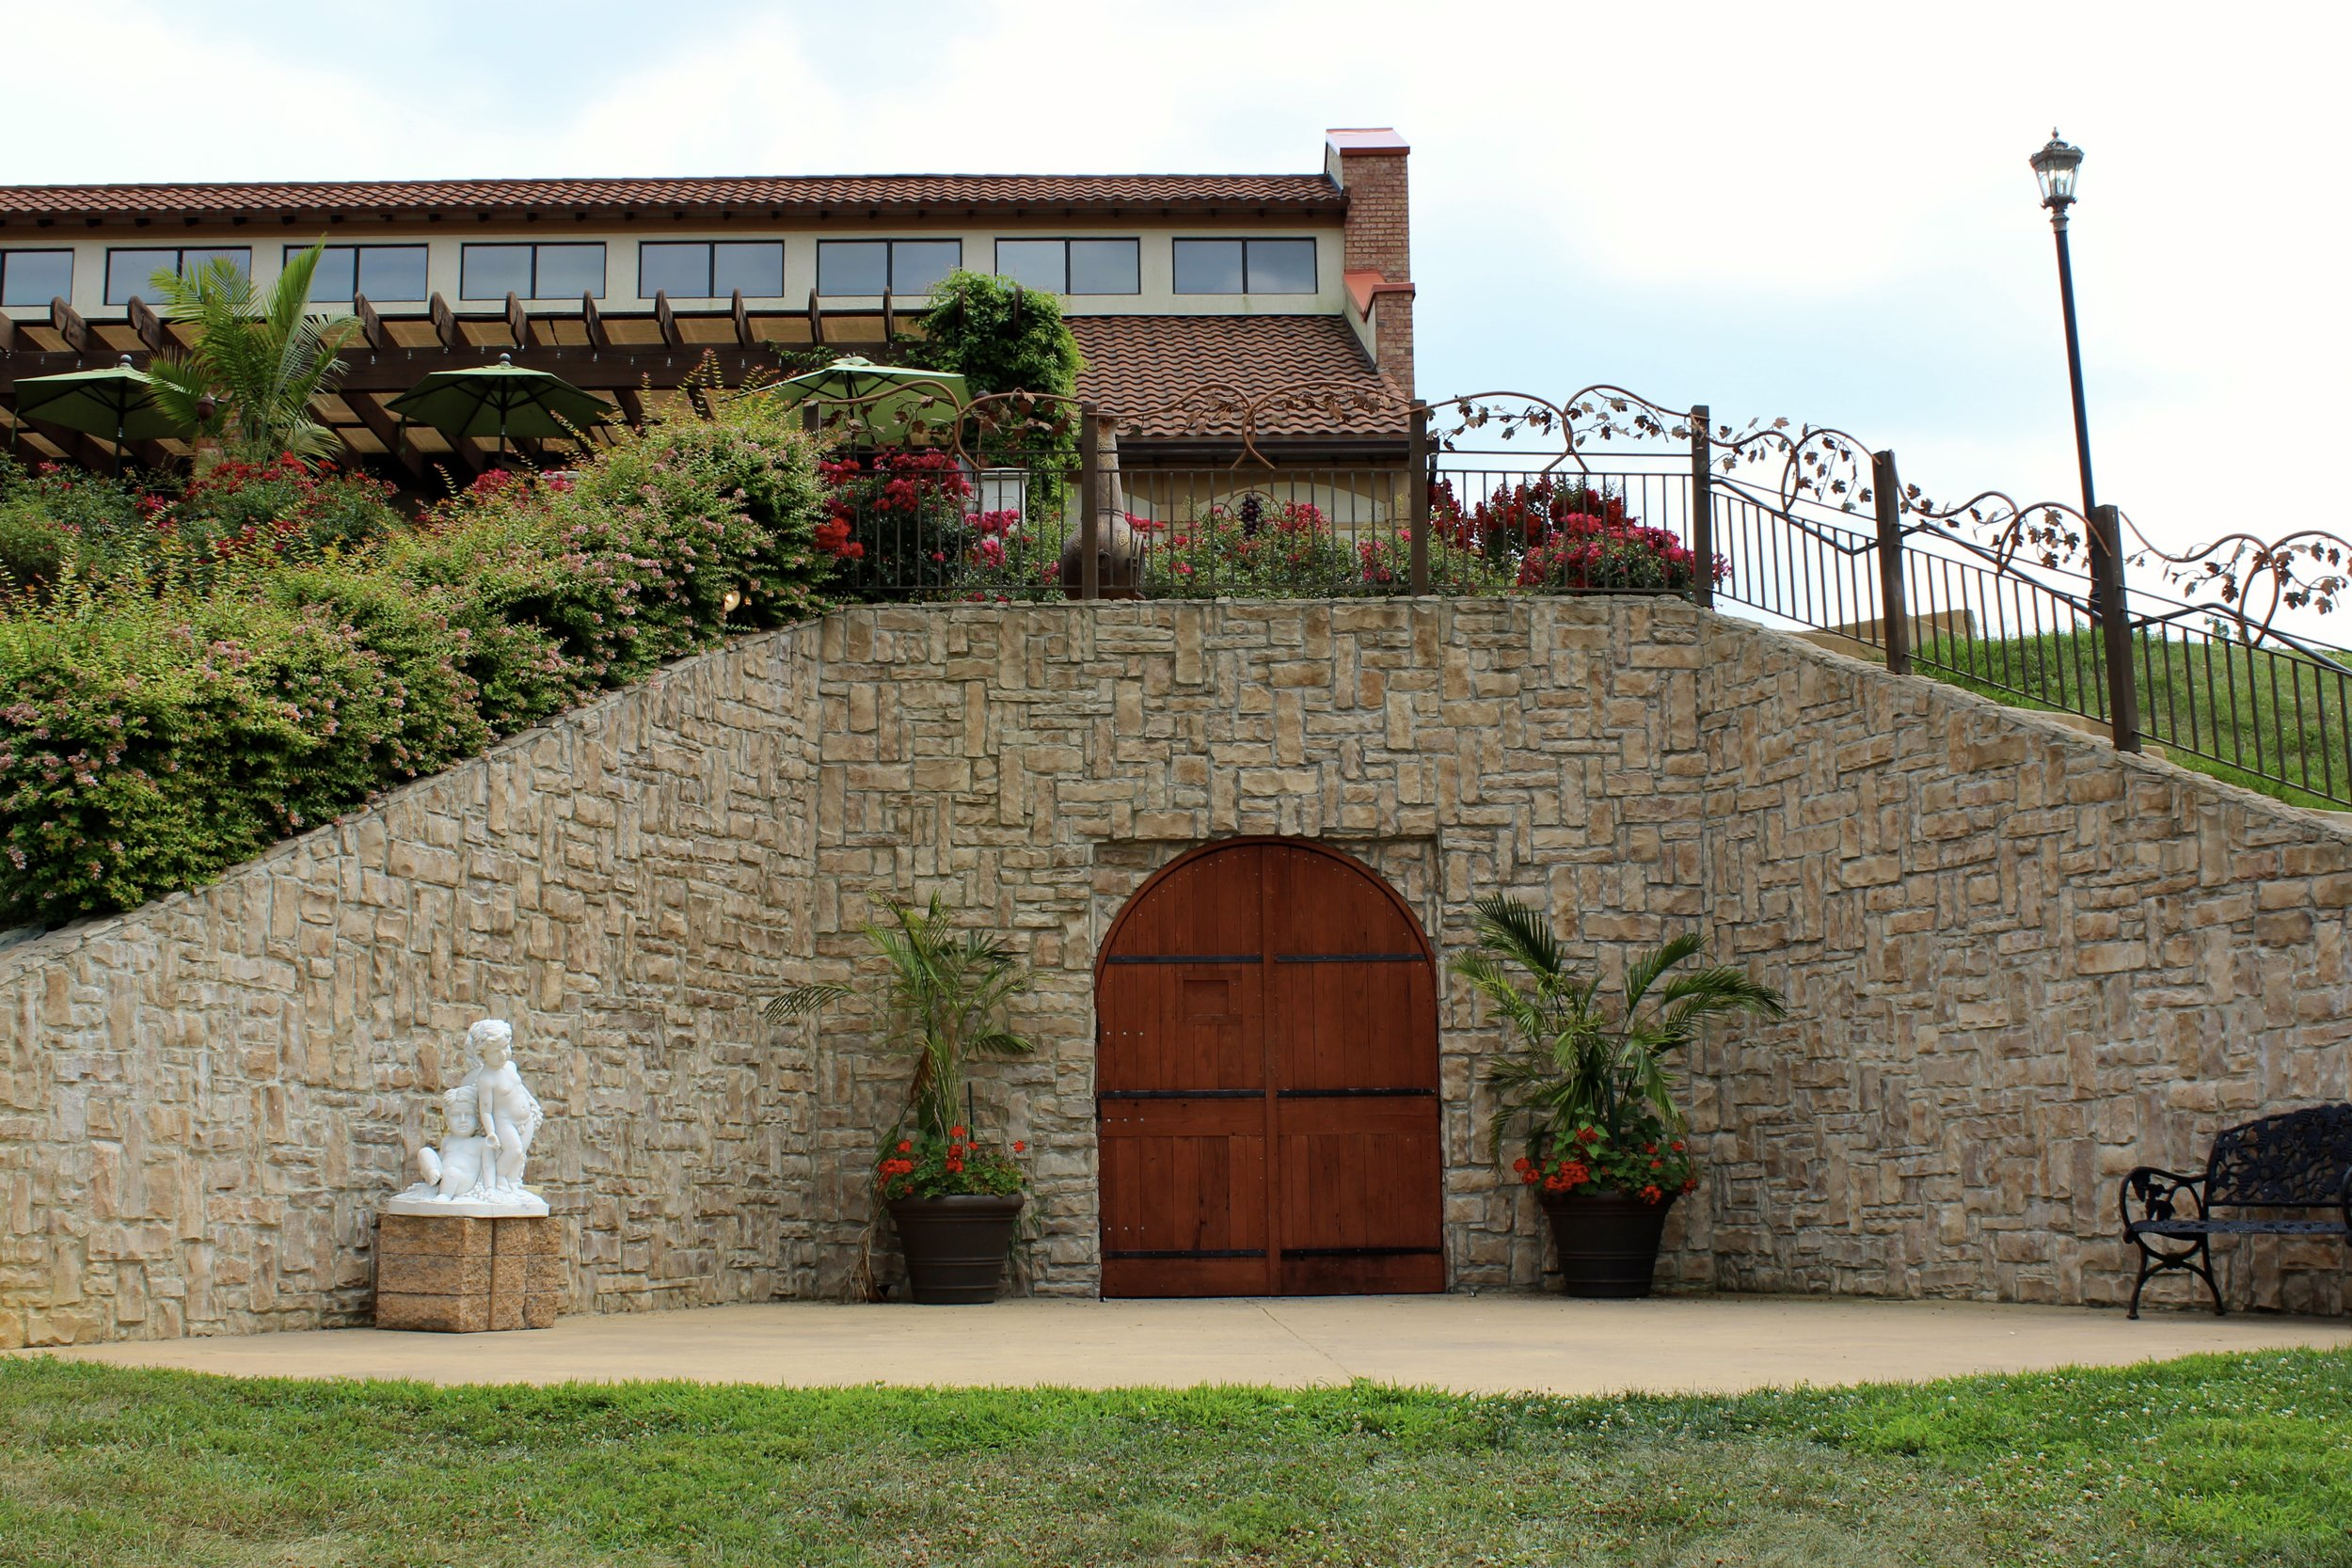 Potomac Point Vineyard and Winery